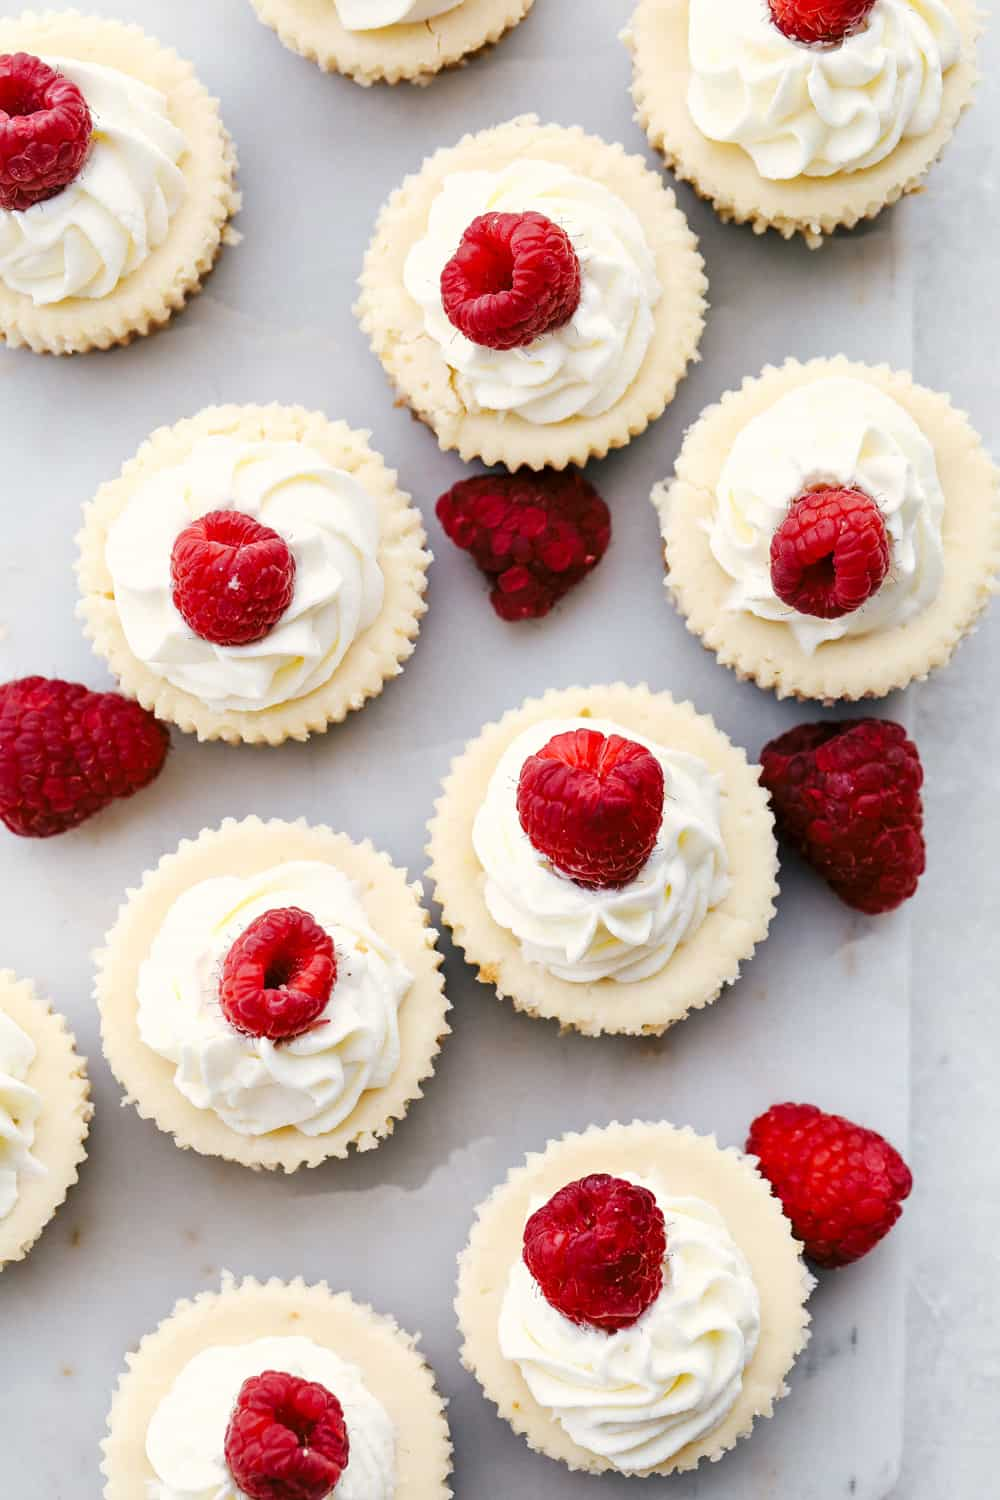 Looking down on cheesecake cupcakes topped with whip cream and raspberries.